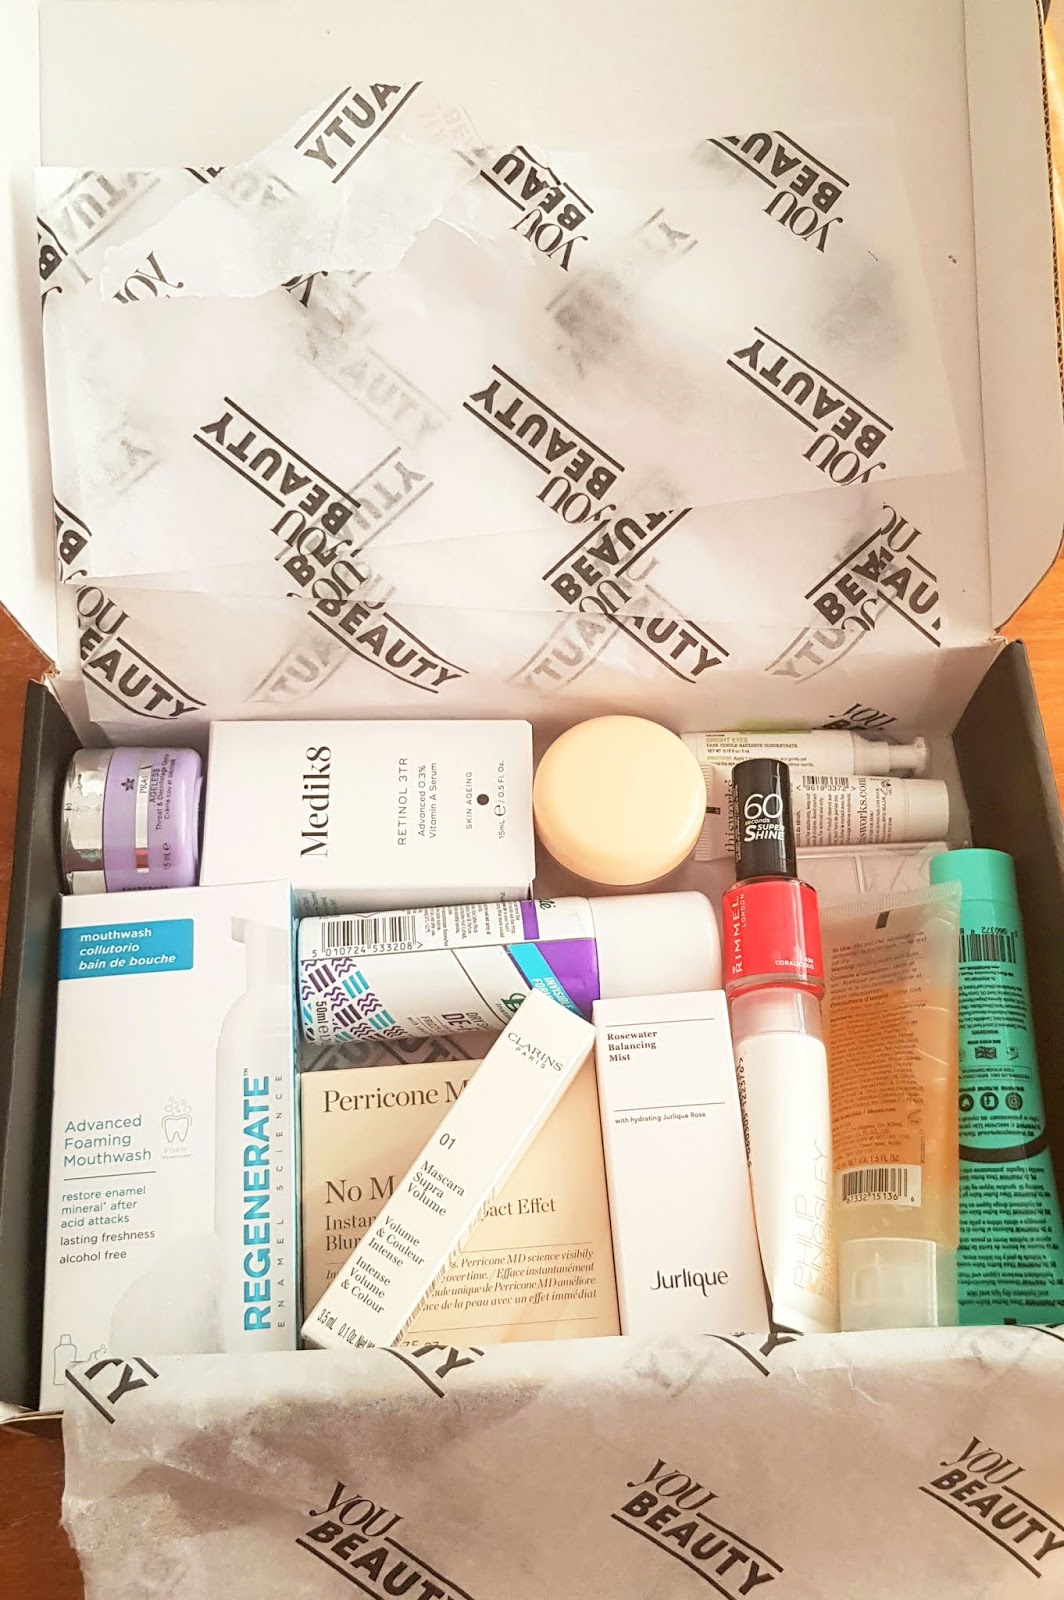 The contents worth one hundred and 70 pounds from the You Beauty Summer 2020 beauty box reviewed by style and beauty blog Is This Mutton